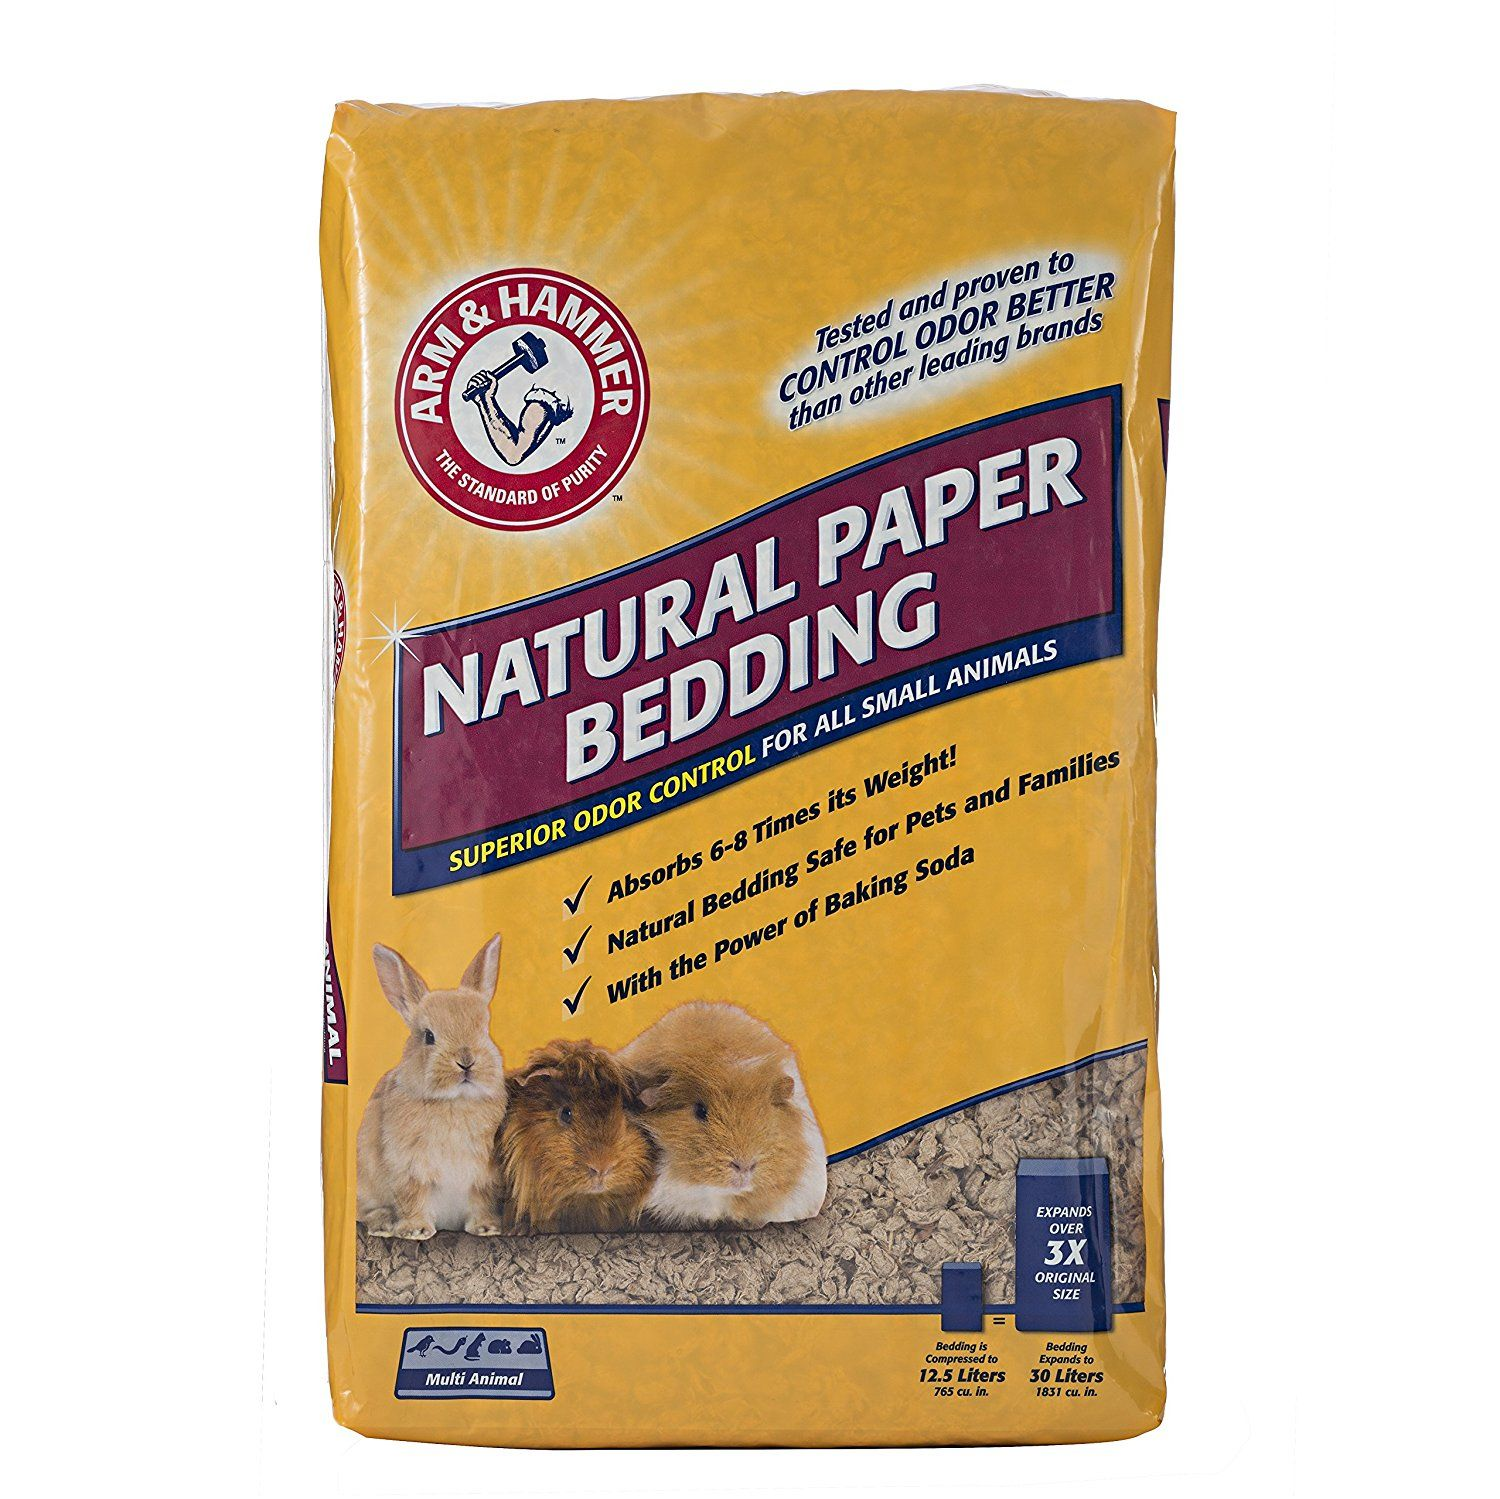 Arm And Hammer Natural Paper Bedding 14 Liters You Can Get More Details By Clicking On The Image This Is An Affiliate Small Pets Small Animal Cage Pets